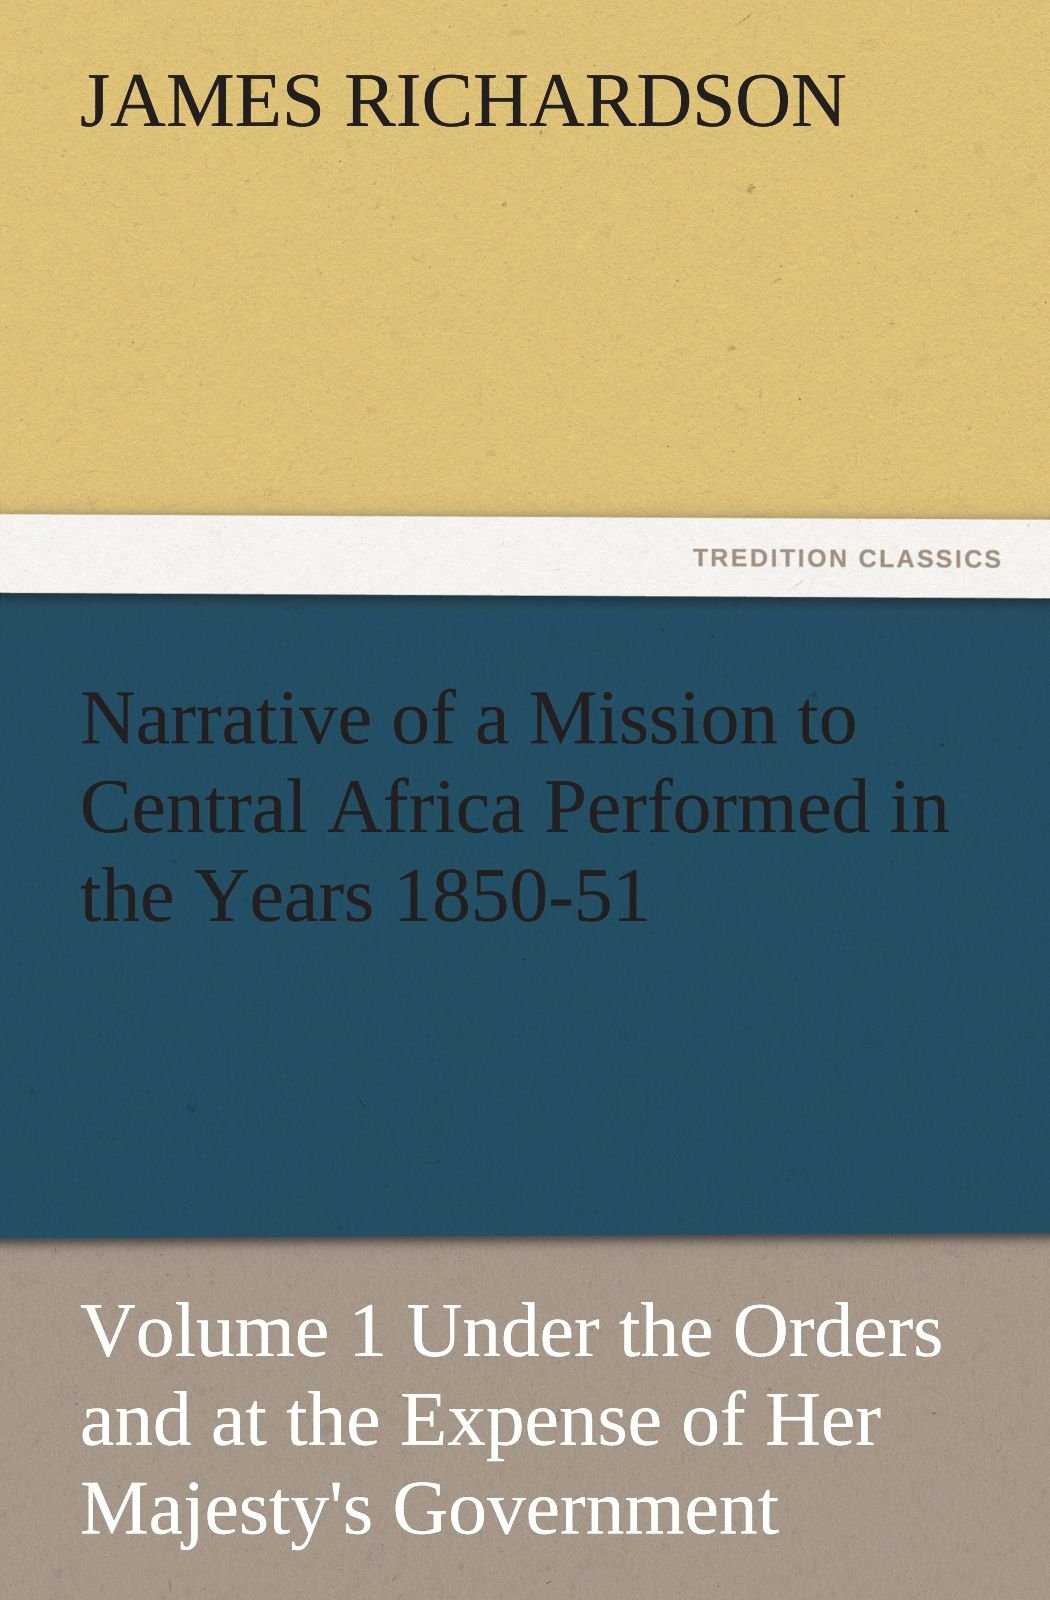 Narrative of a Mission to Central Africa Performed in the Years 1850-51, Volume 1 Under the Orders and at the Expense of Her Majesty's Government (TREDITION CLASSICS) PDF Text fb2 book